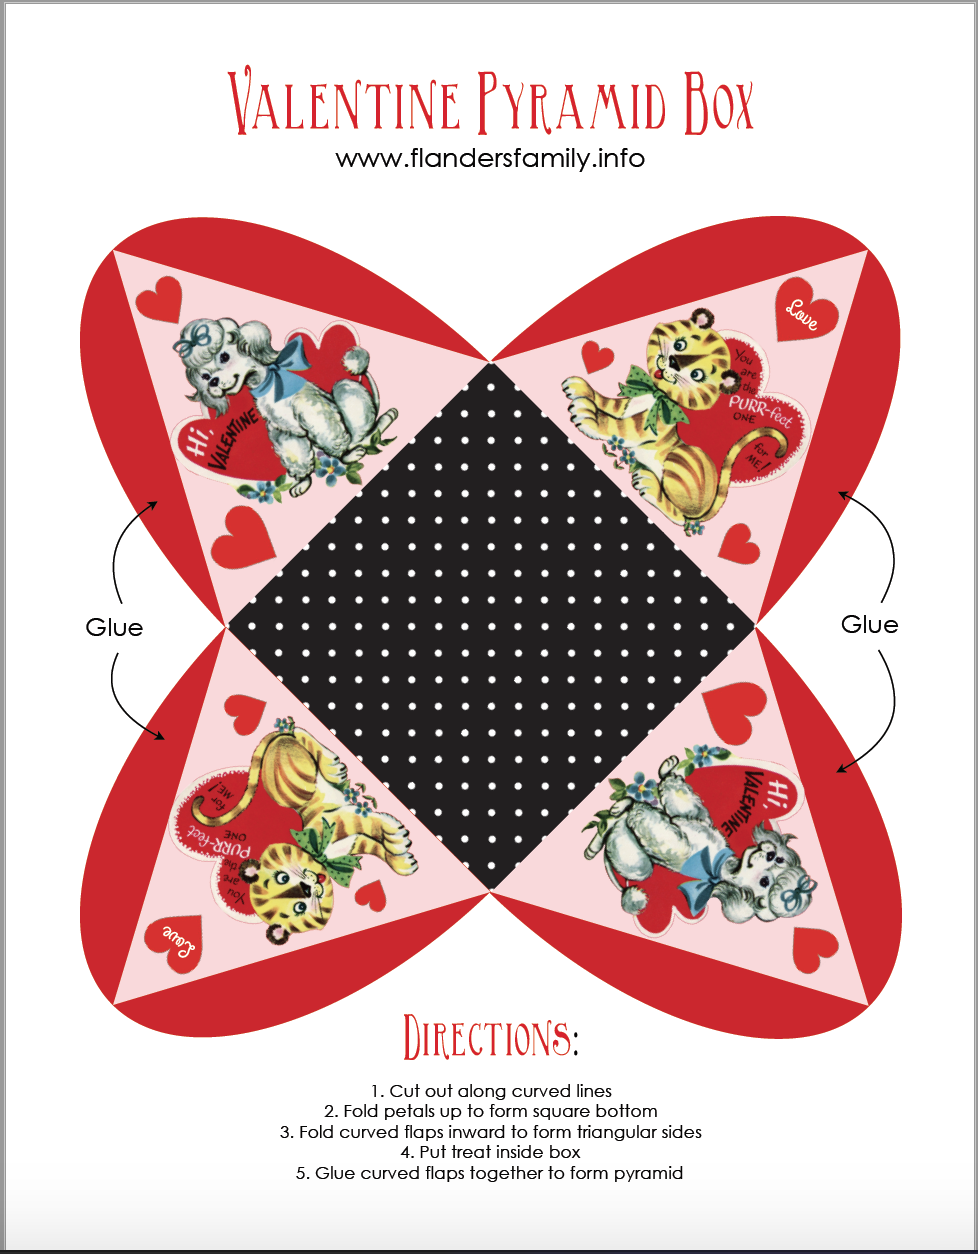 Free printable pyramid boxes for Valentine's Day